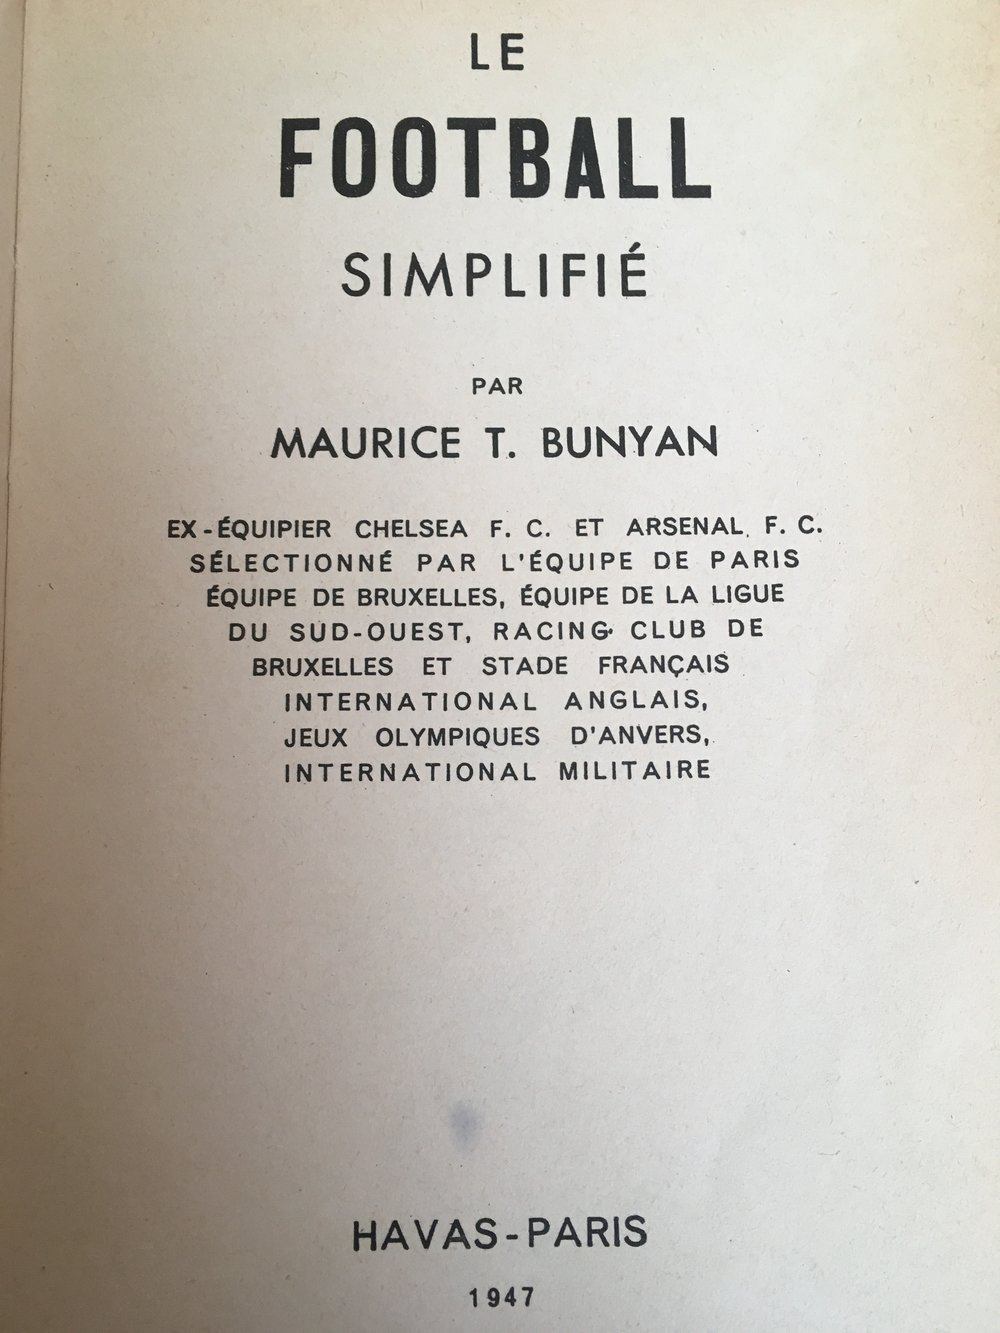 A summary of Maurice's career til 1947